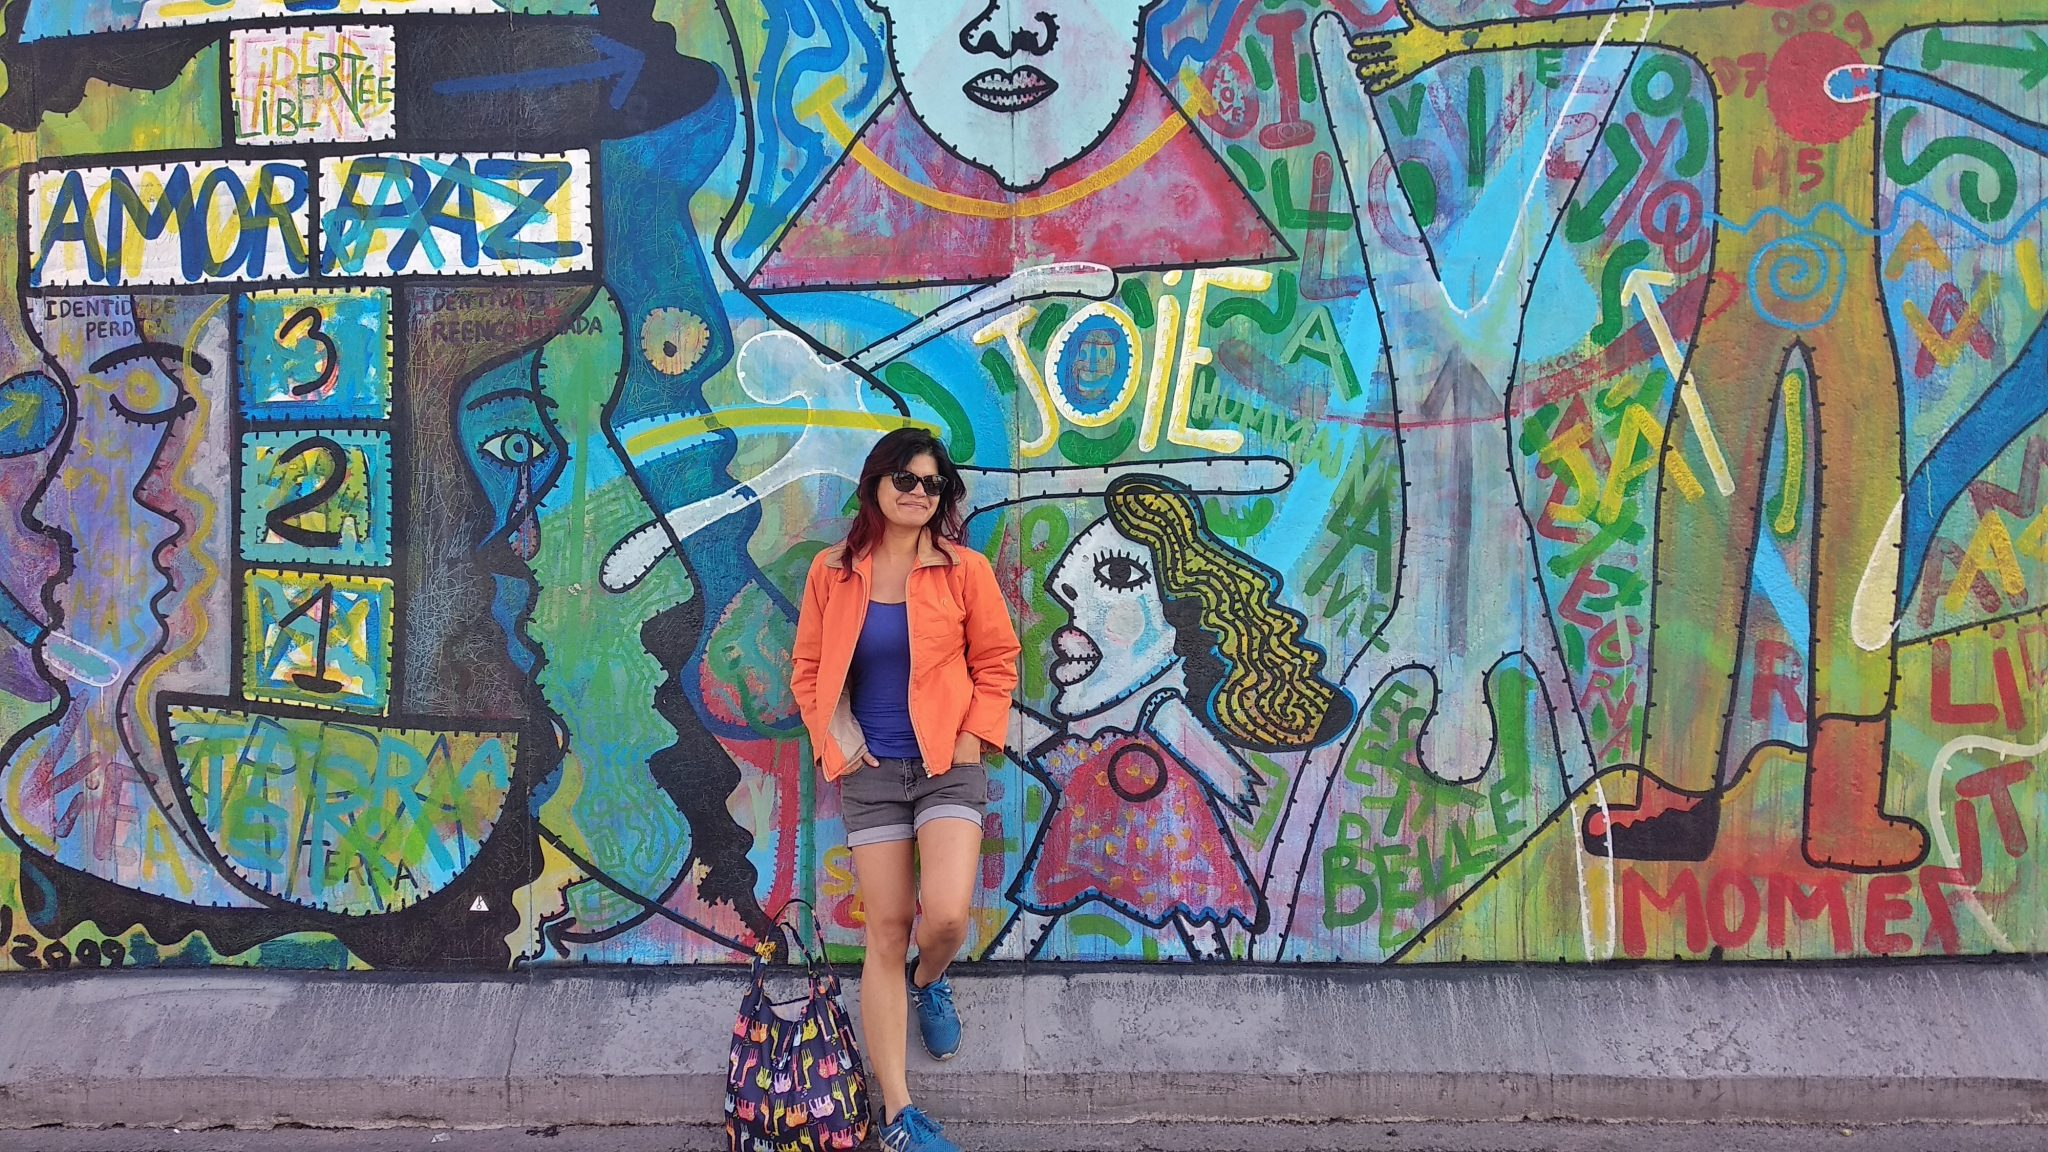 How to Spend 2 days in Berlin - [Itinerary, Tours & Attractions]